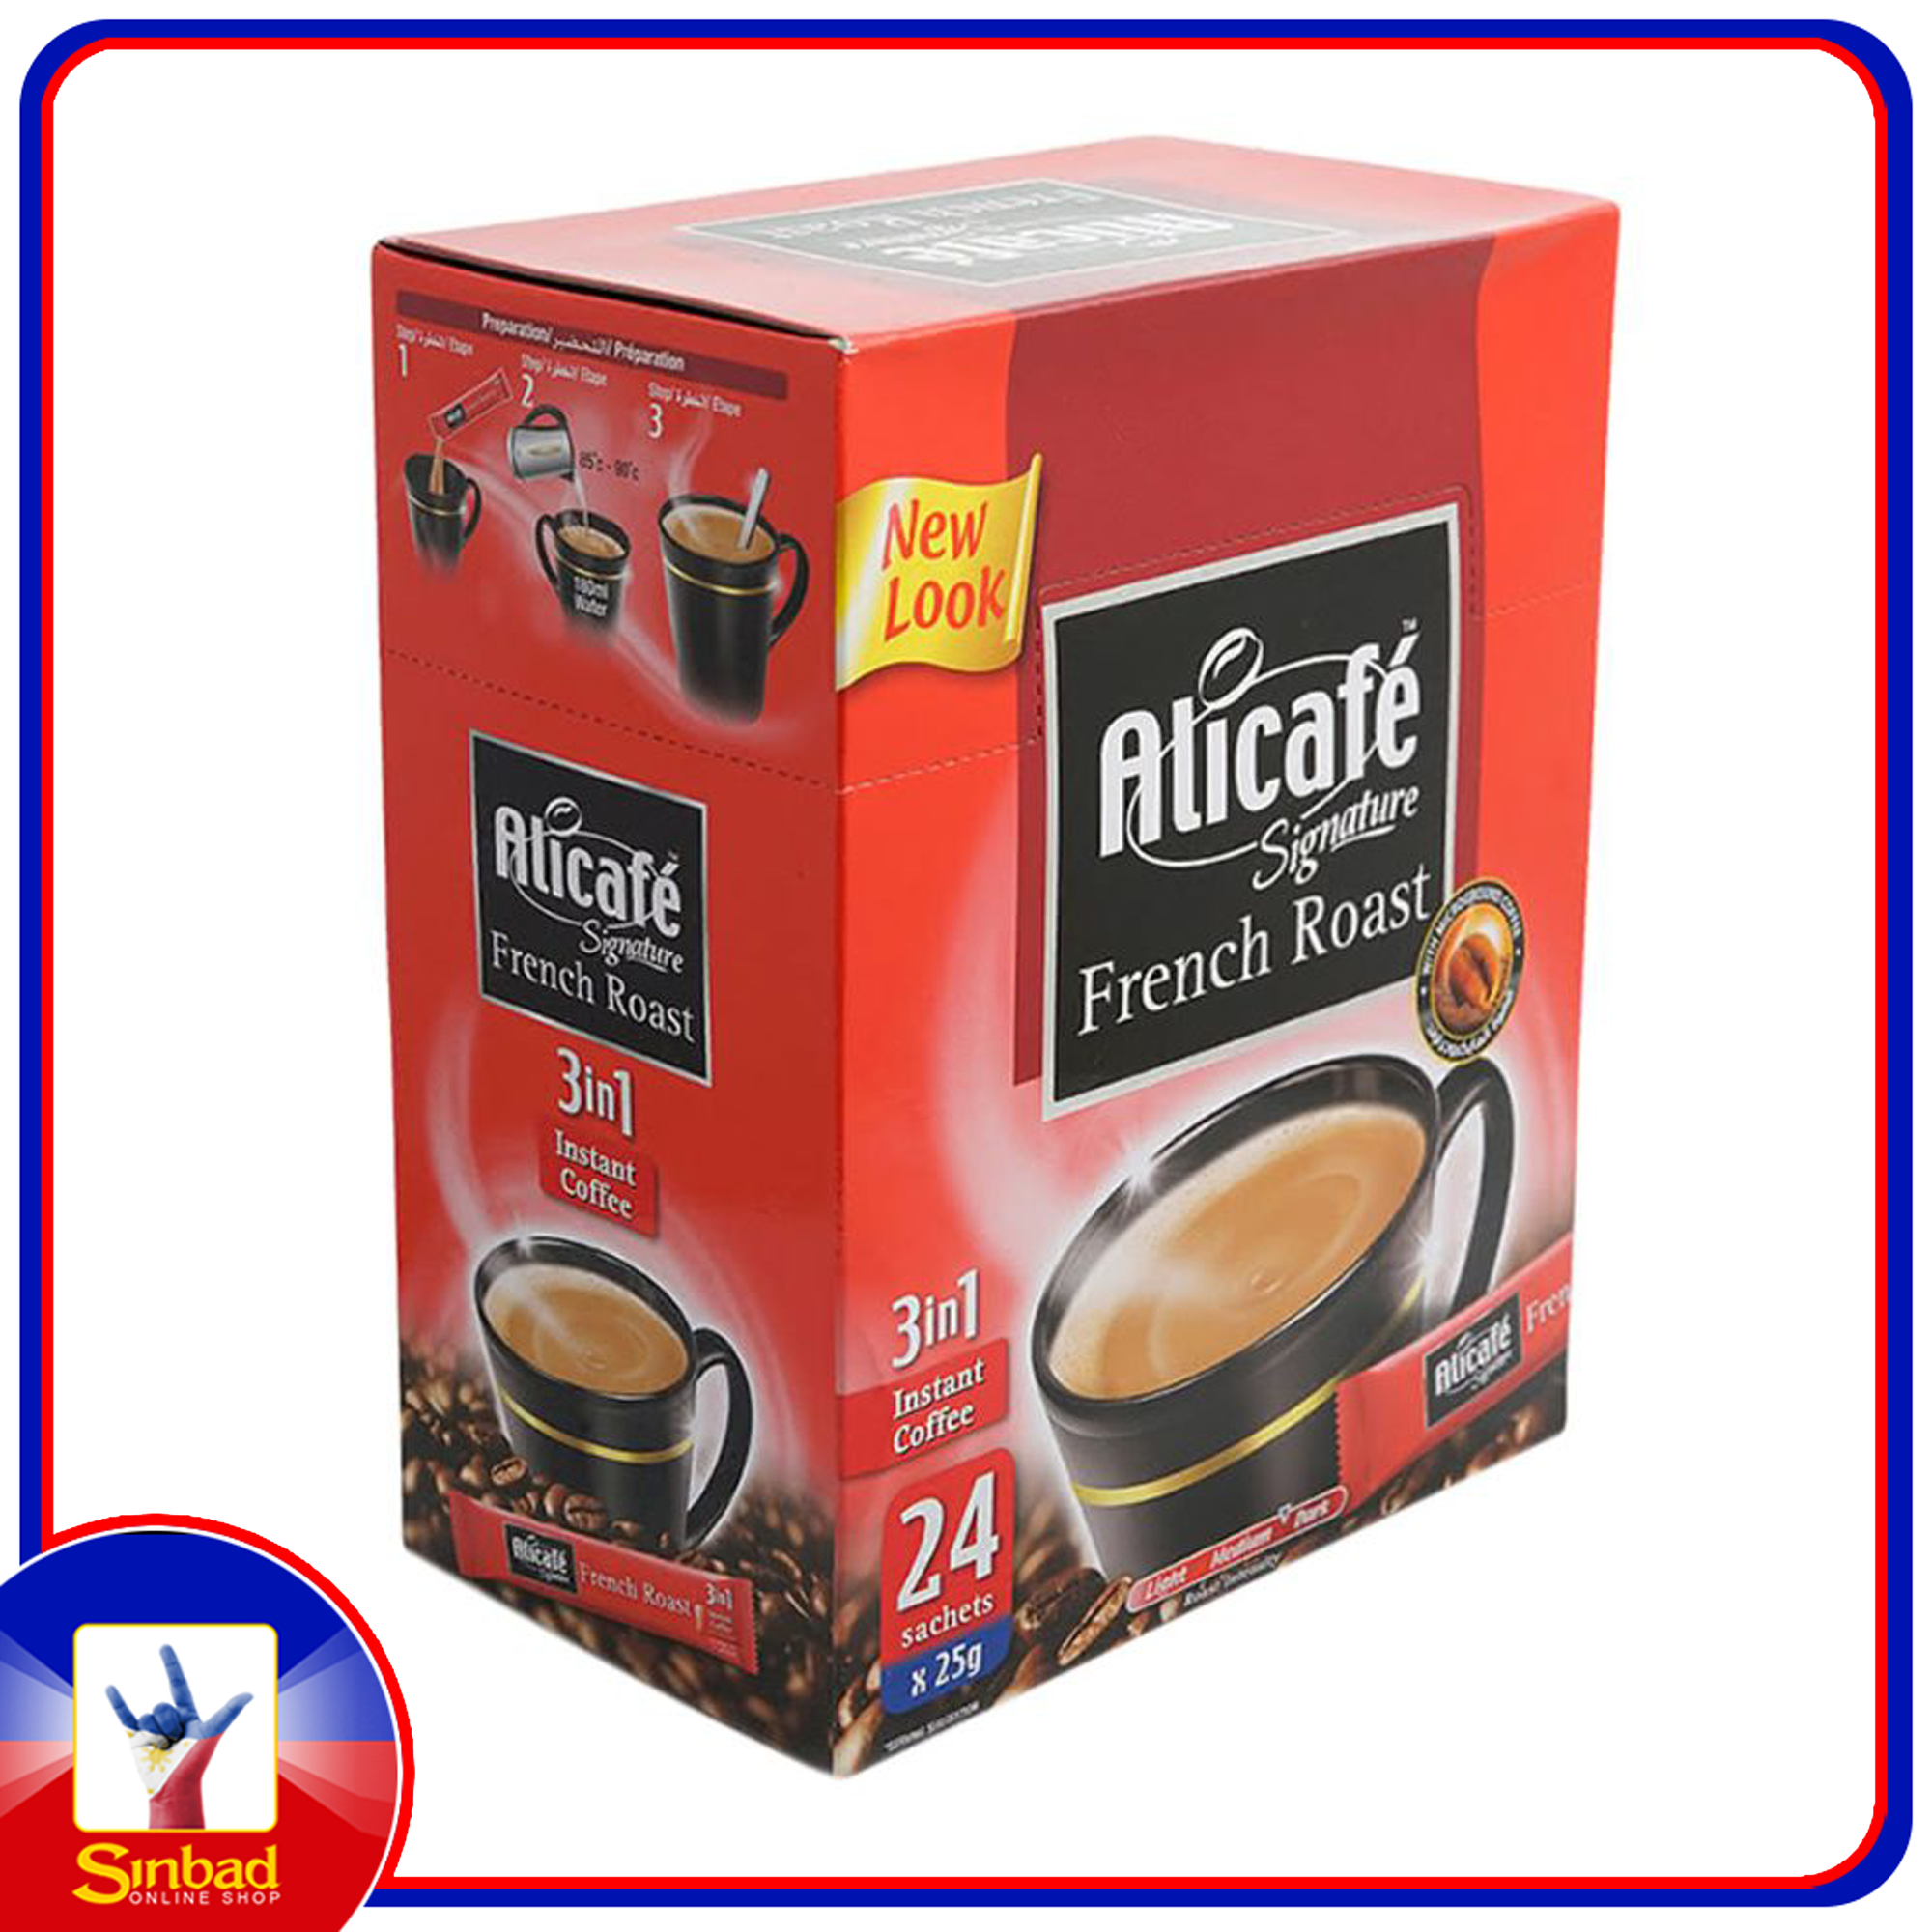 Alicafe Signature 3 In 1 French Roast 25g x 24 Pieces